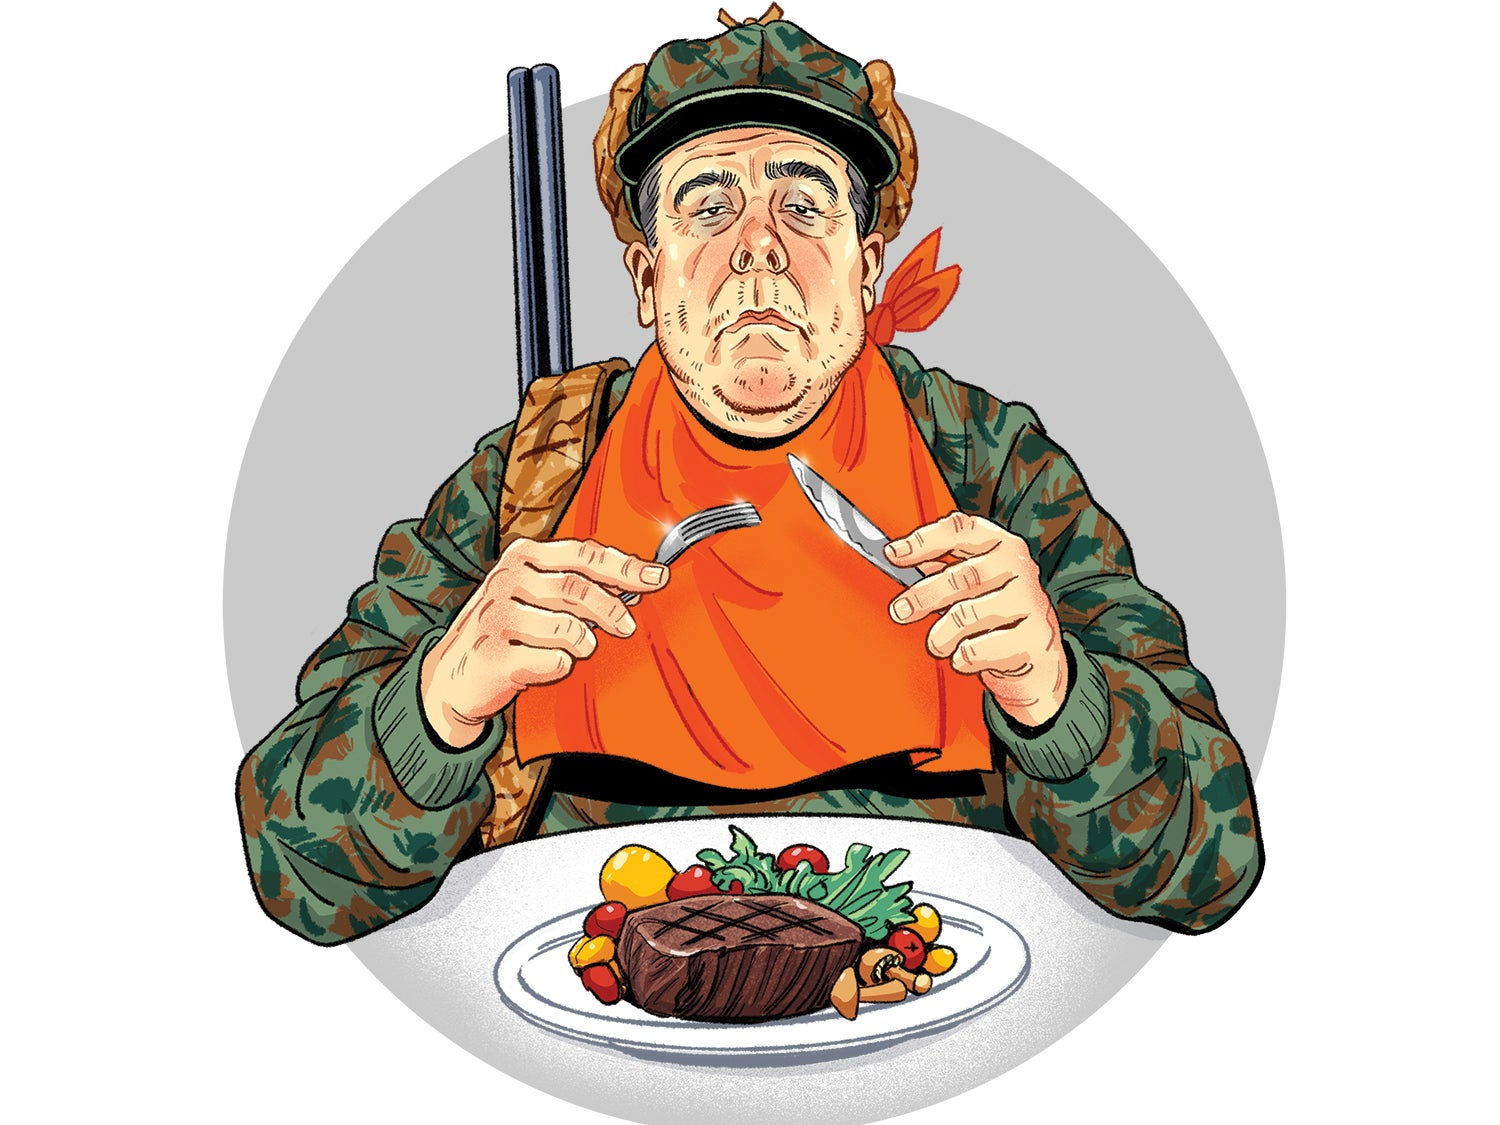 Illustration of a hunter eating a steak.